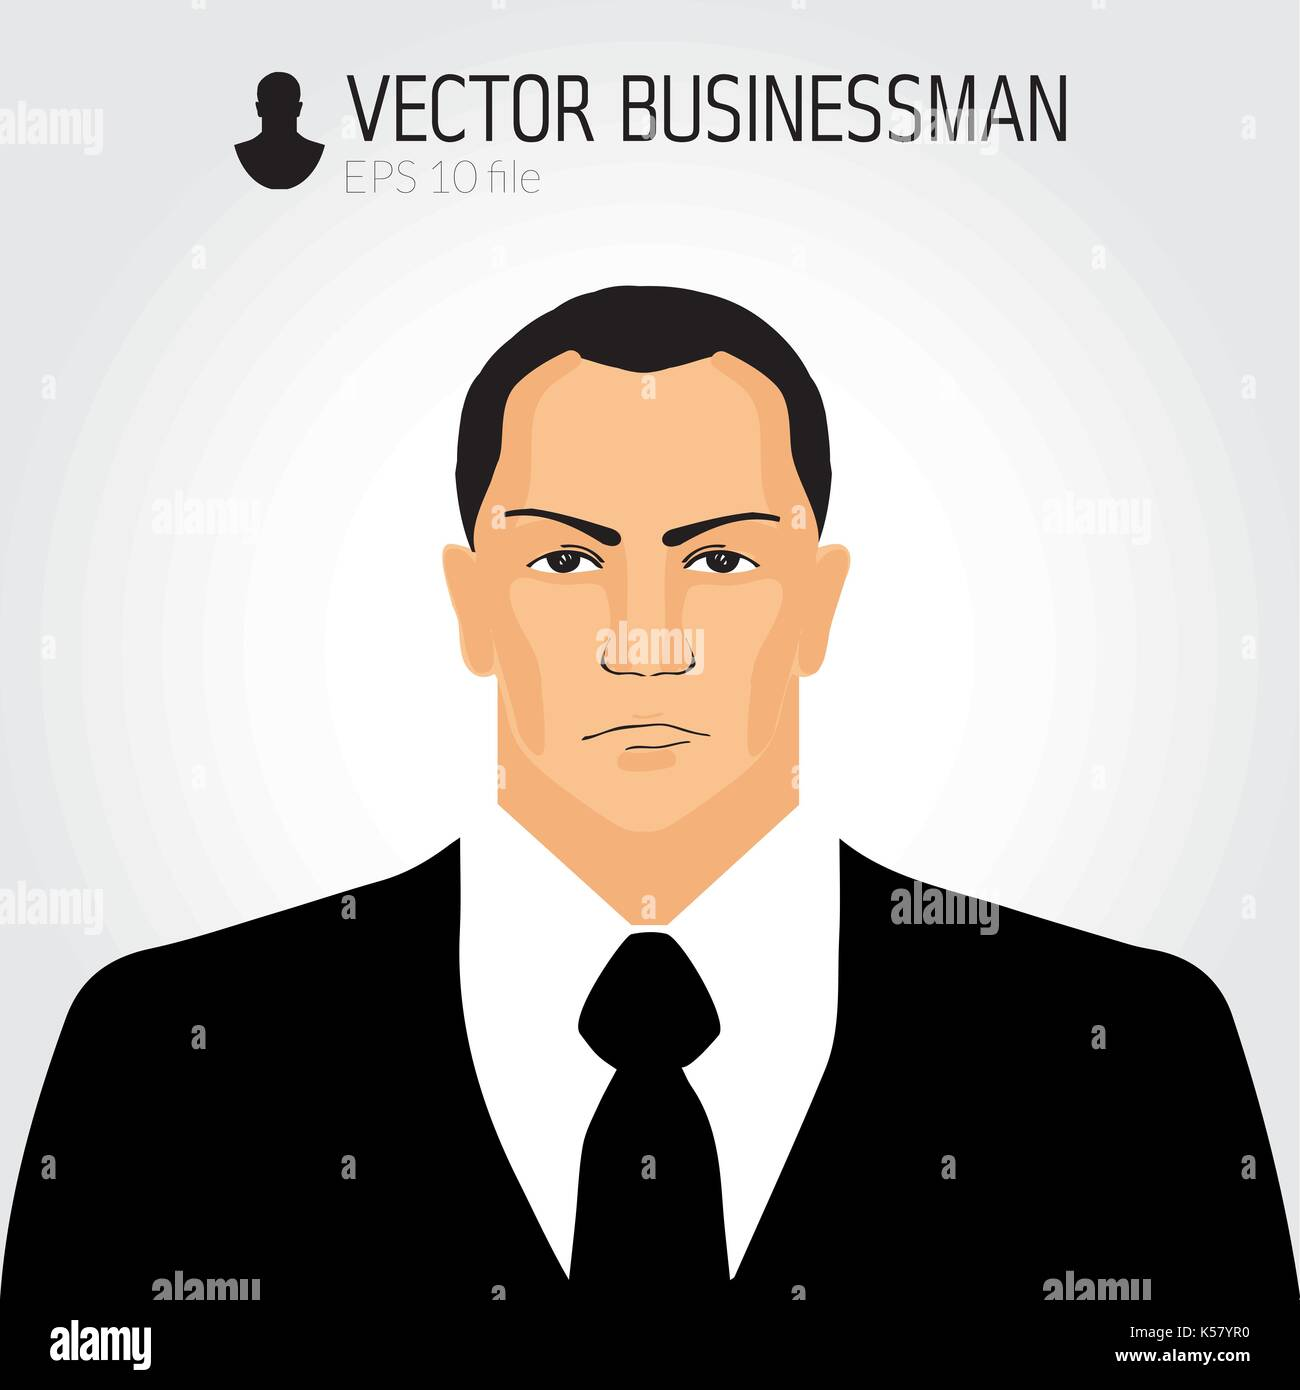 Angry businessmand avatar, businessman icon, business portrait, character - Stock Image